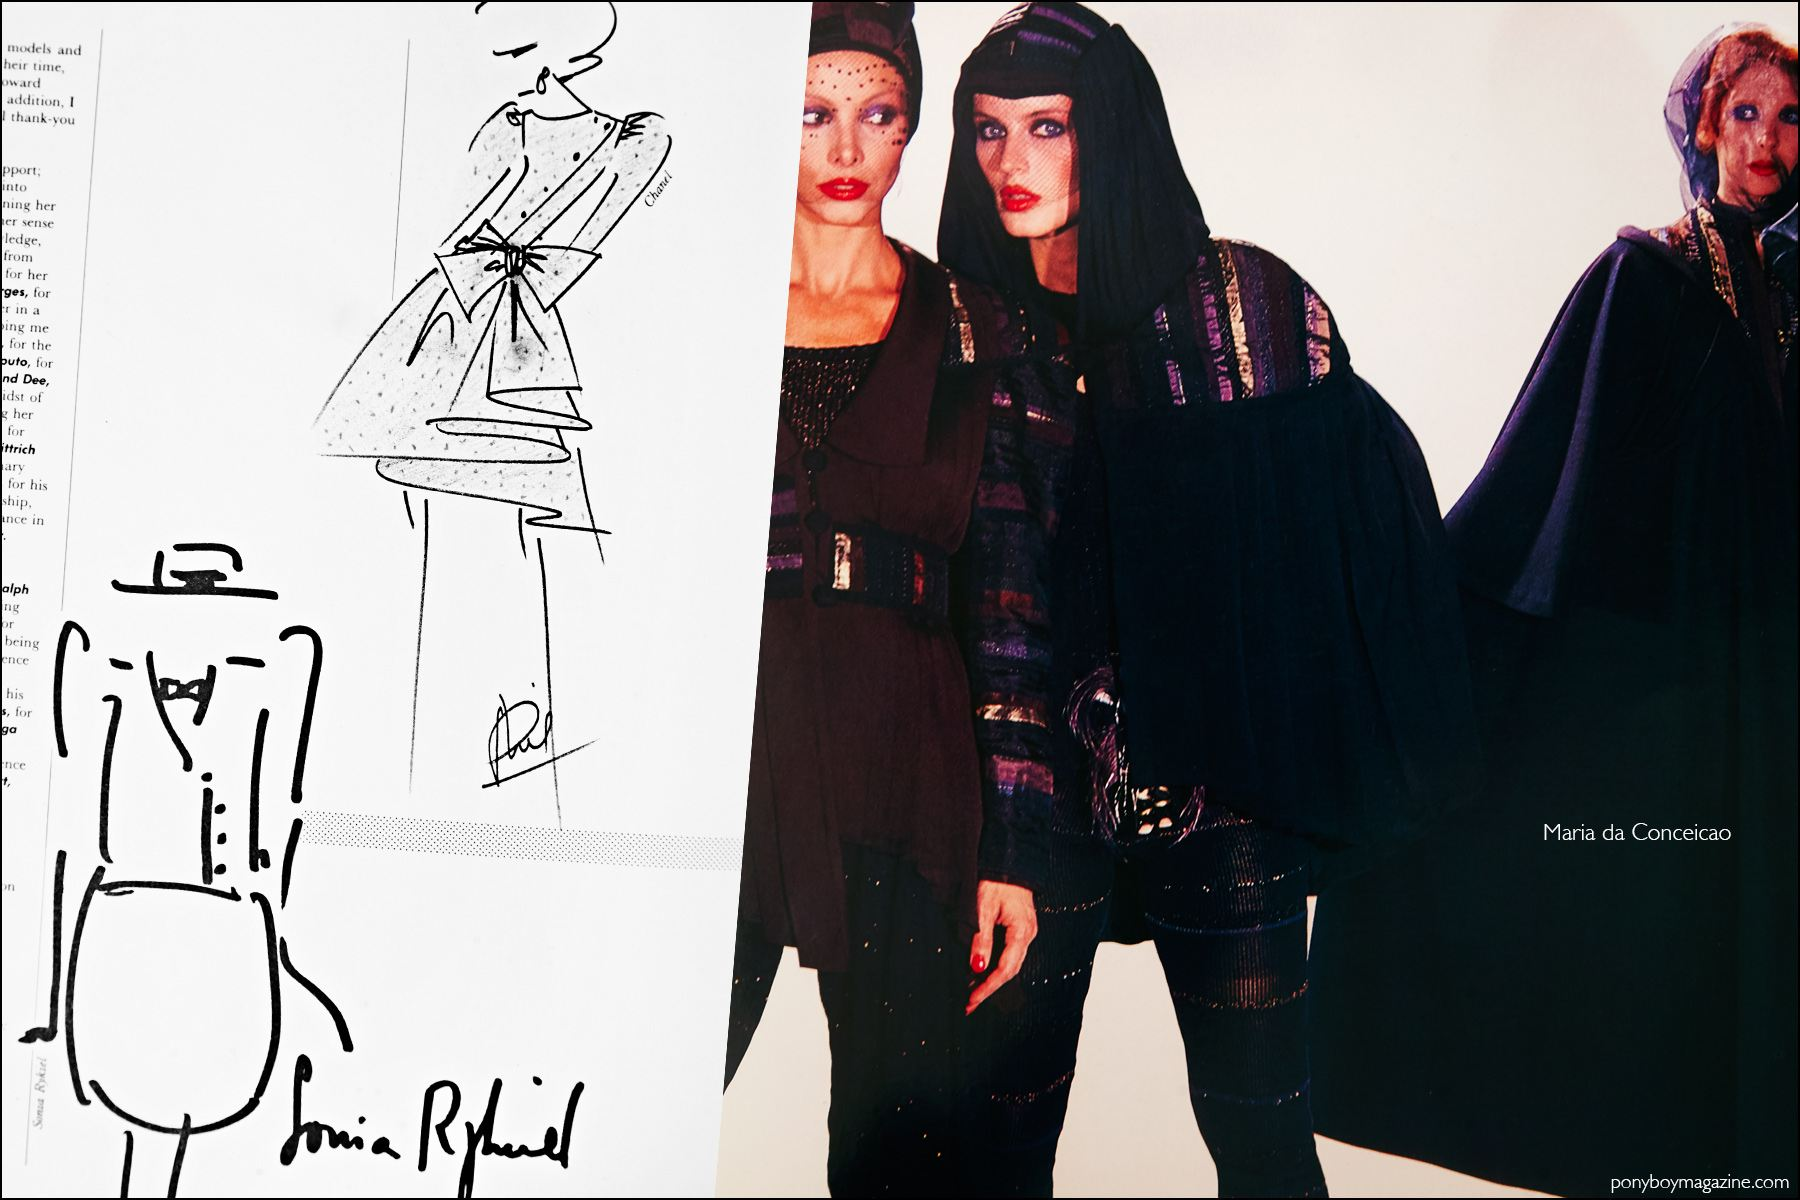 Fashion sketches by Sonia Rykiel and Chanel, featured in the book Fashion: 2001 by Lucille Khornak. Ponyboy magazine NY.